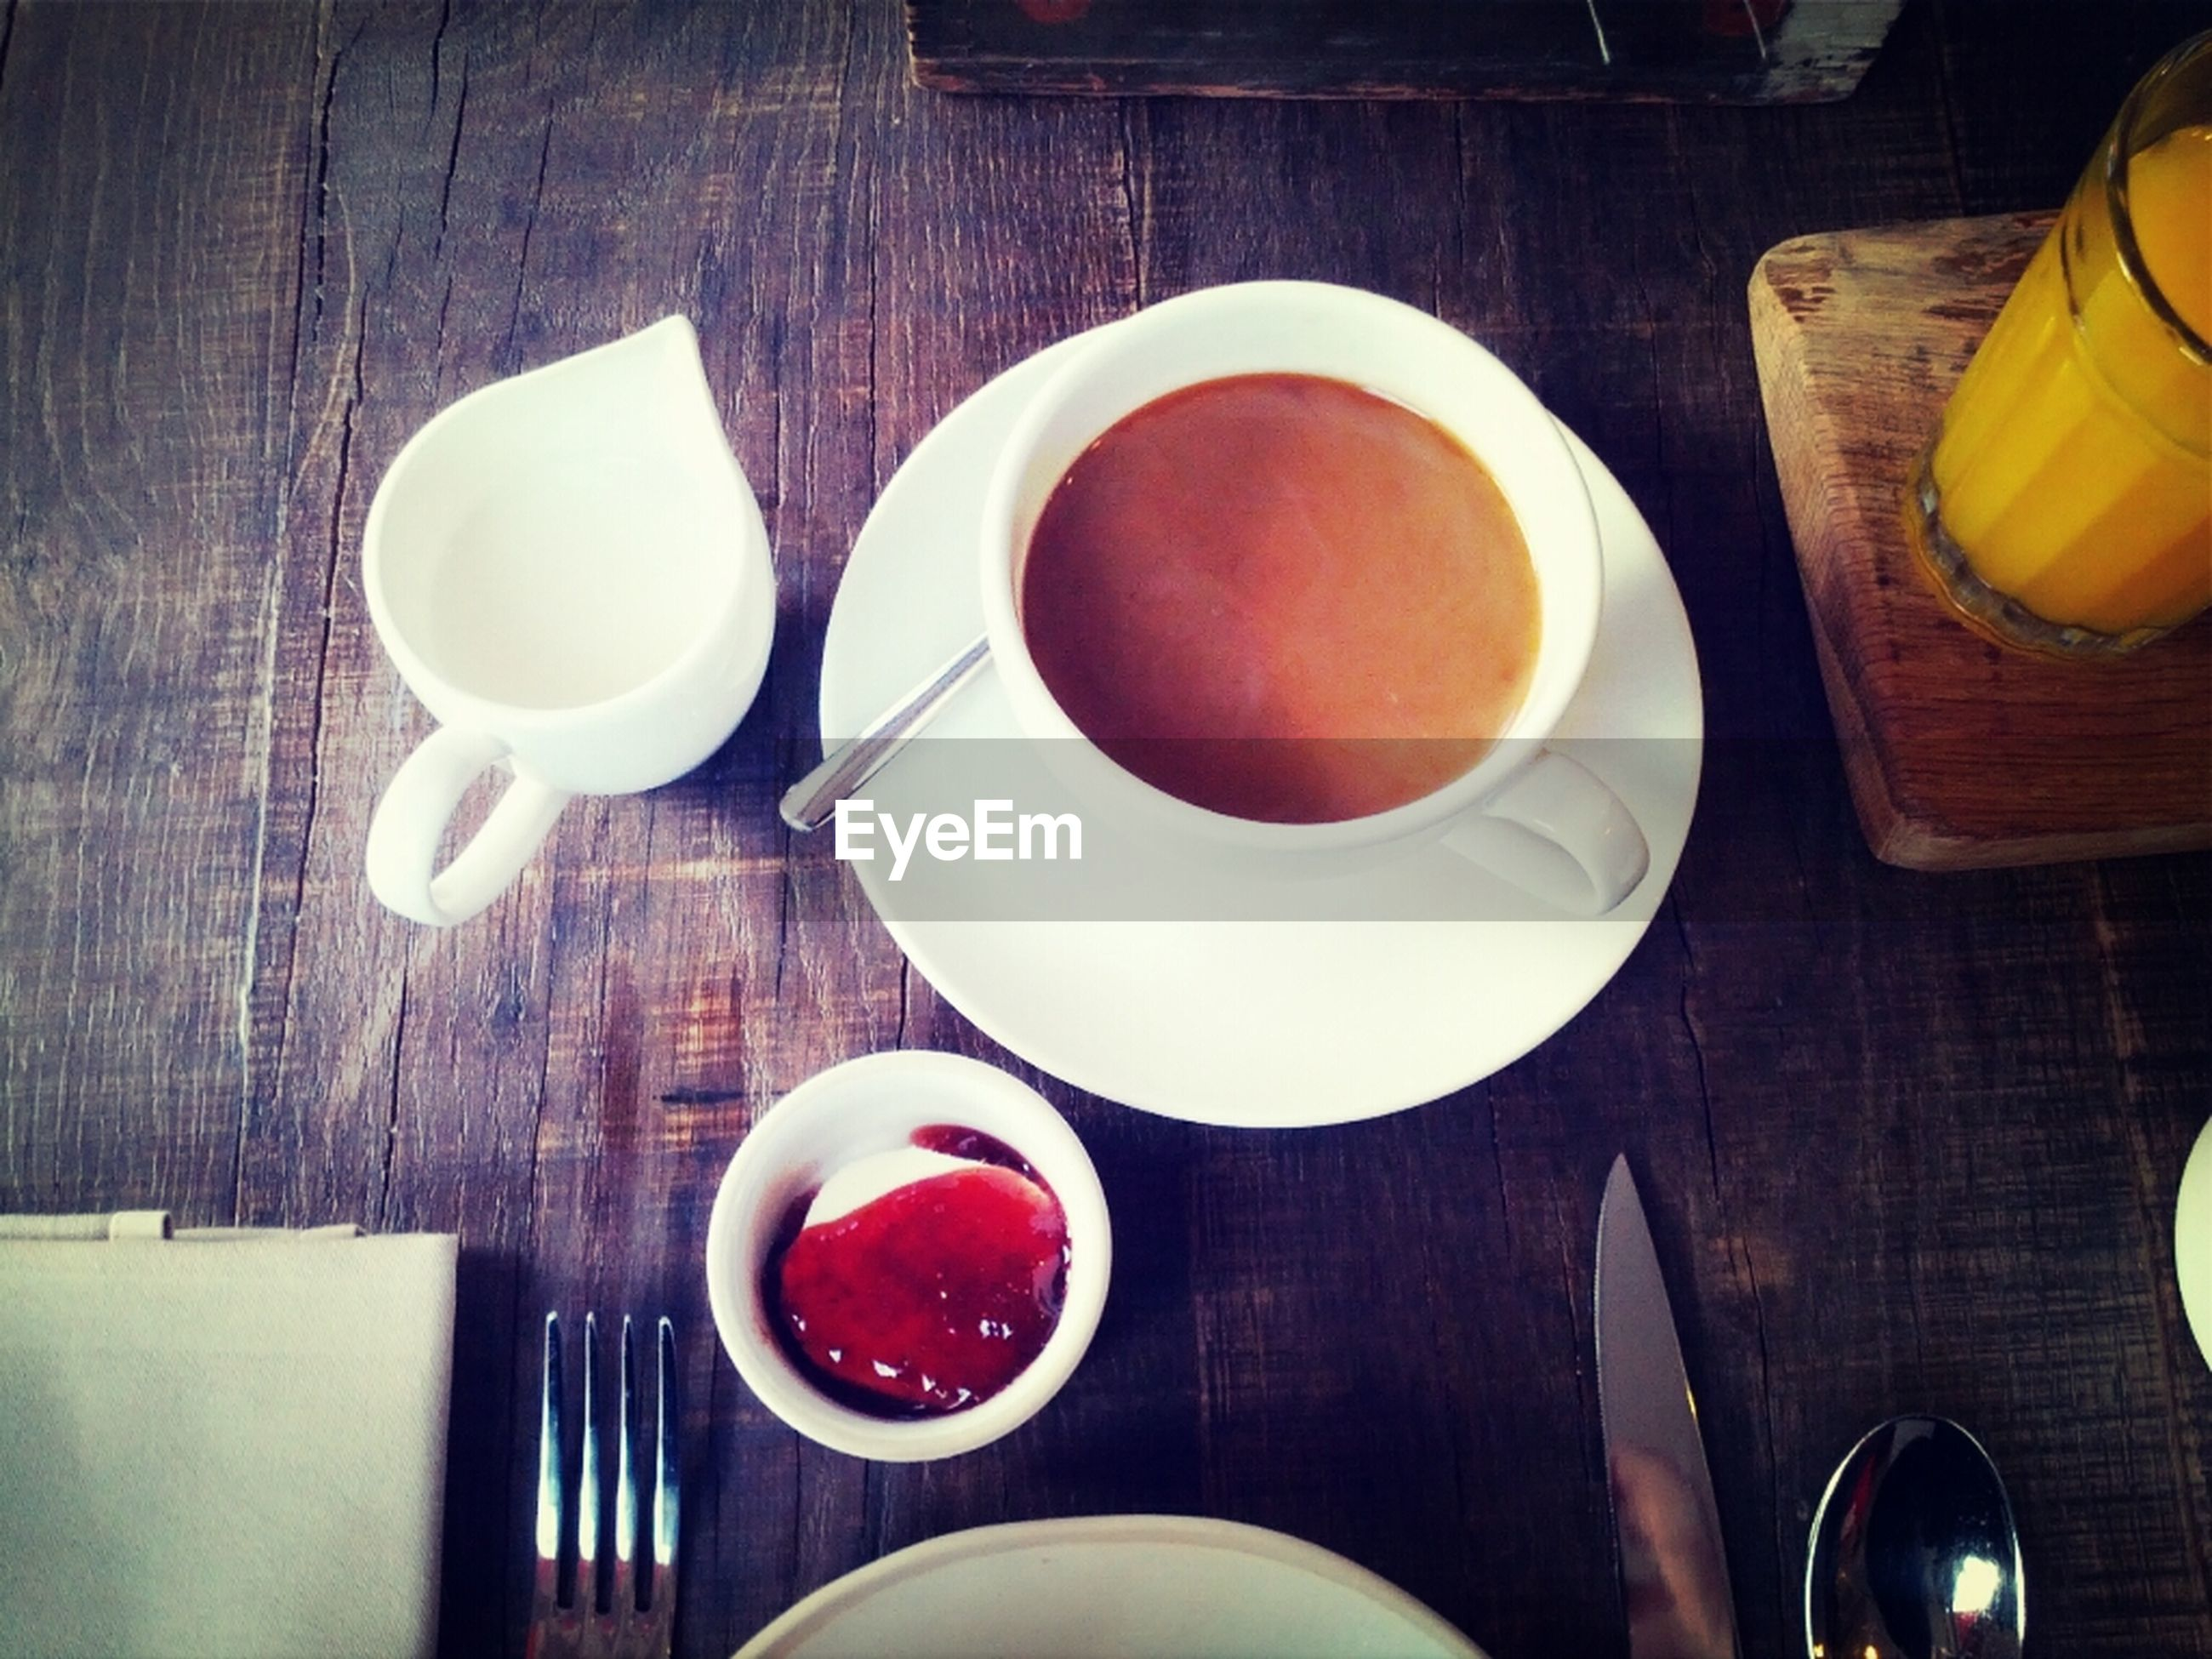 Coffee with milk on wooden table